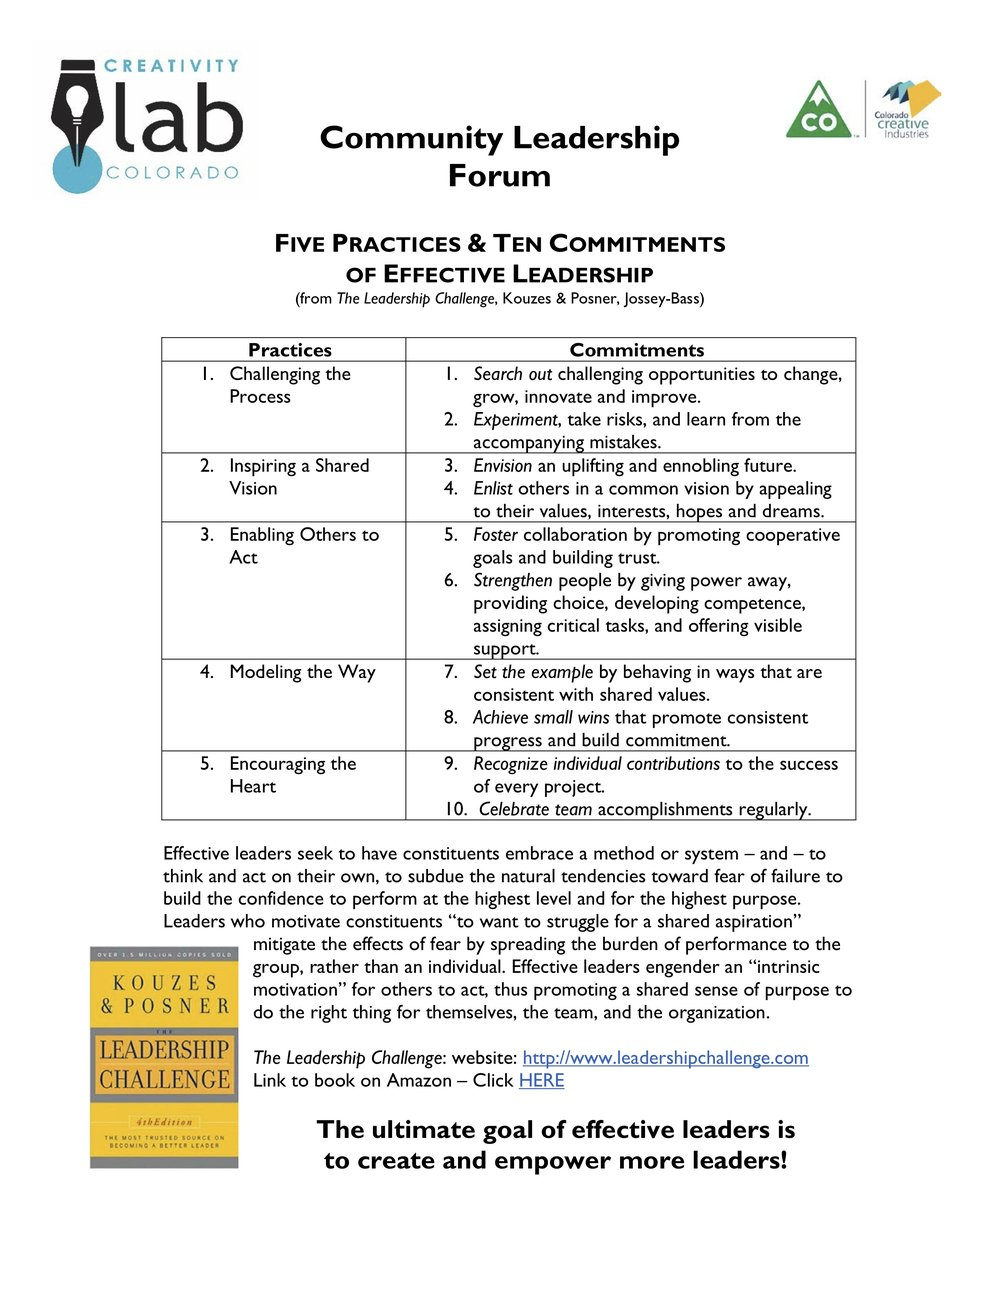 Five Practices & Ten Commitments of Effective Leadership -